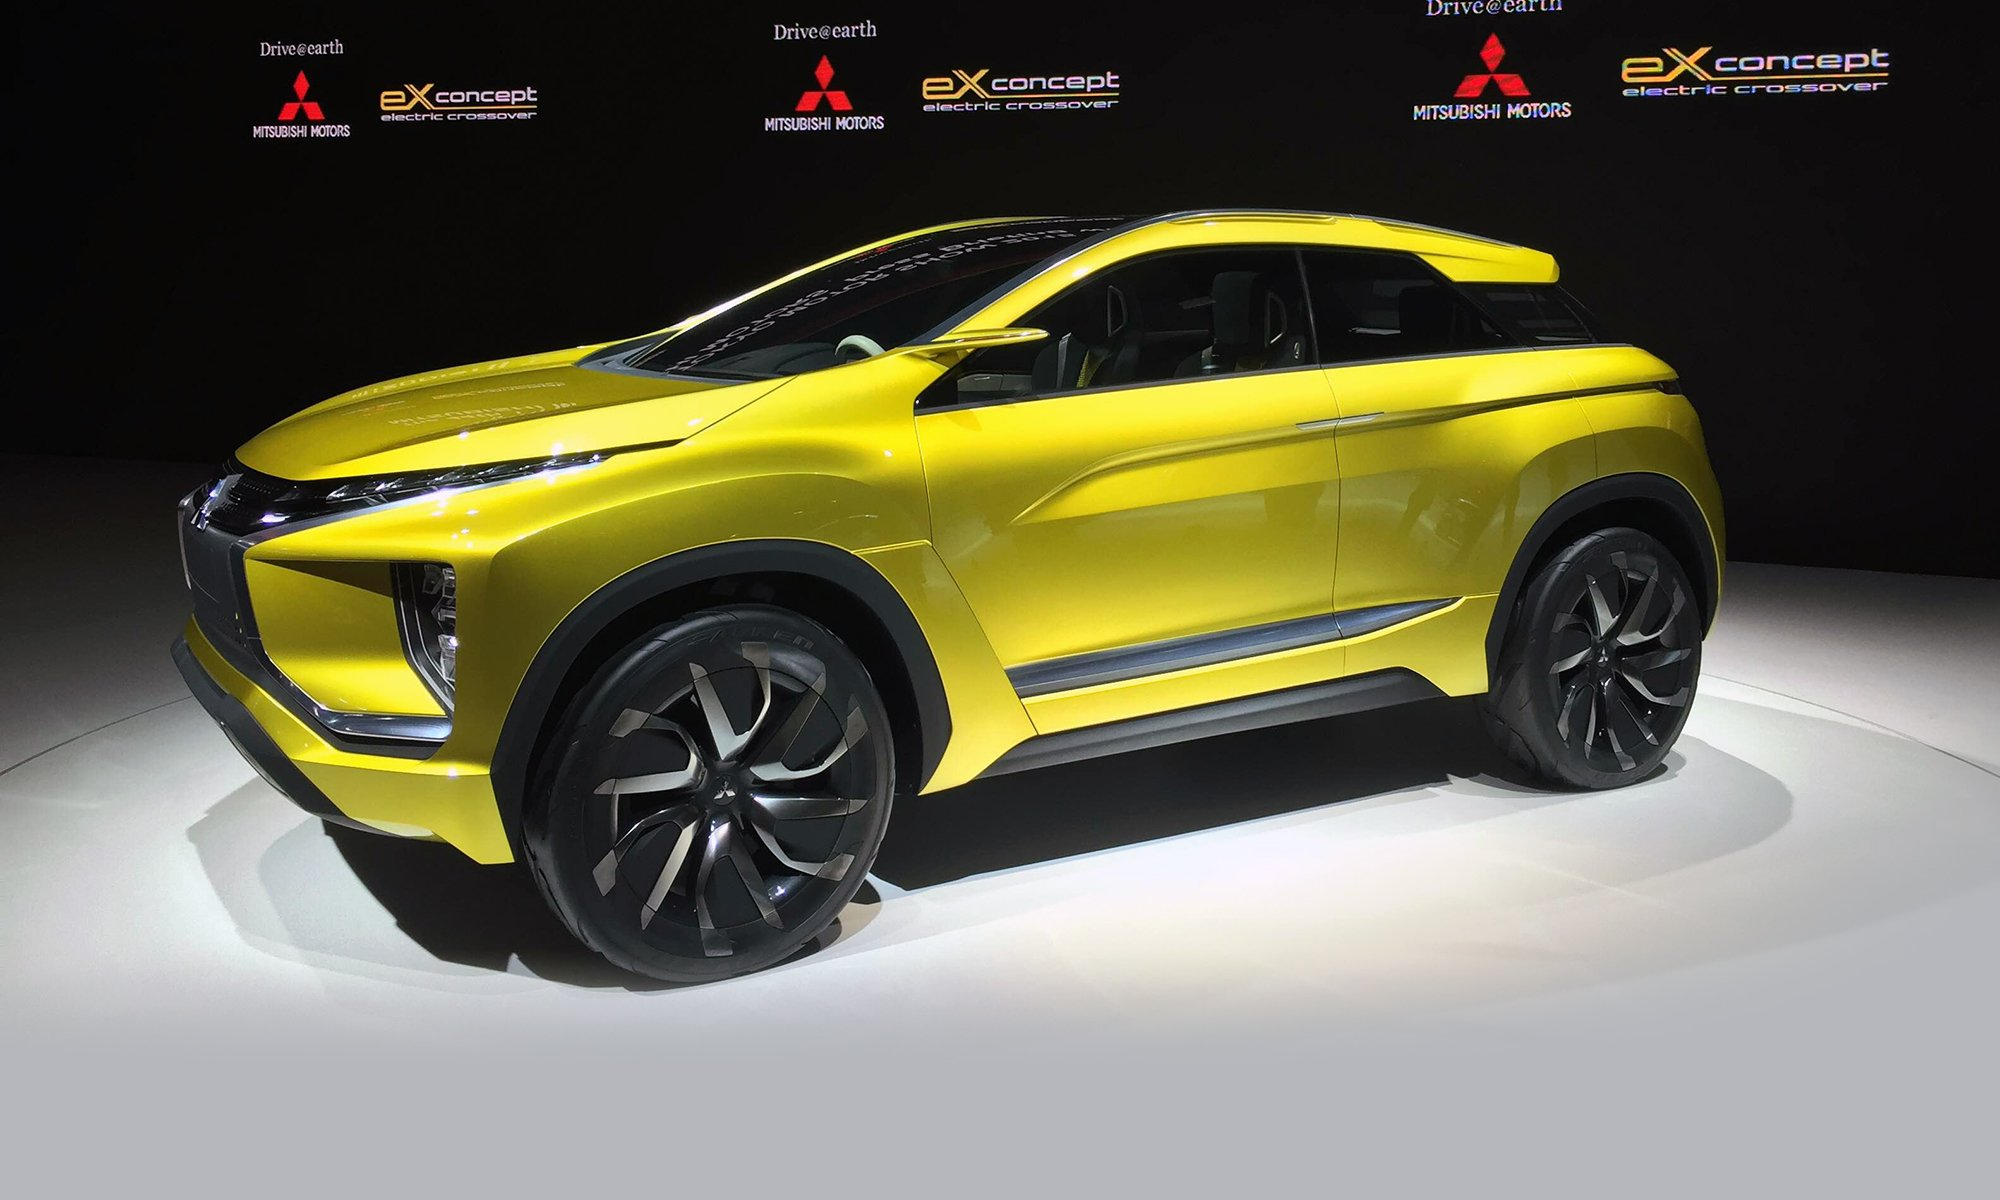 Mitsubishi teases 'crossover MPV' concept ahead of August debut - Photos (1 of 3)